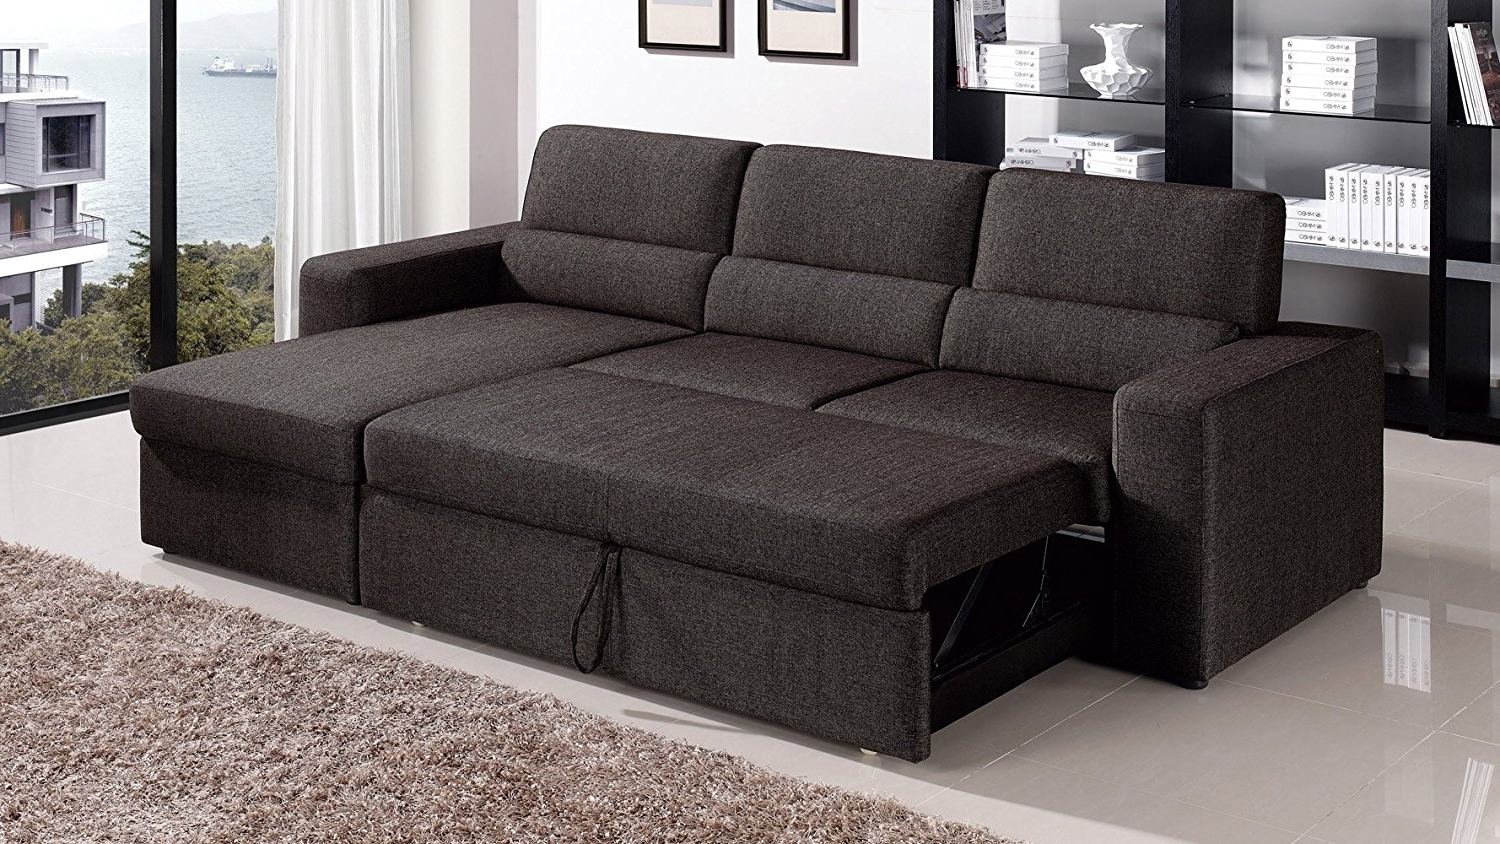 Amazon: Black/brown Clubber Sleeper Sectional Sofa – Right Throughout Well Known Sleeper Sofas With Chaise And Storage (View 3 of 15)